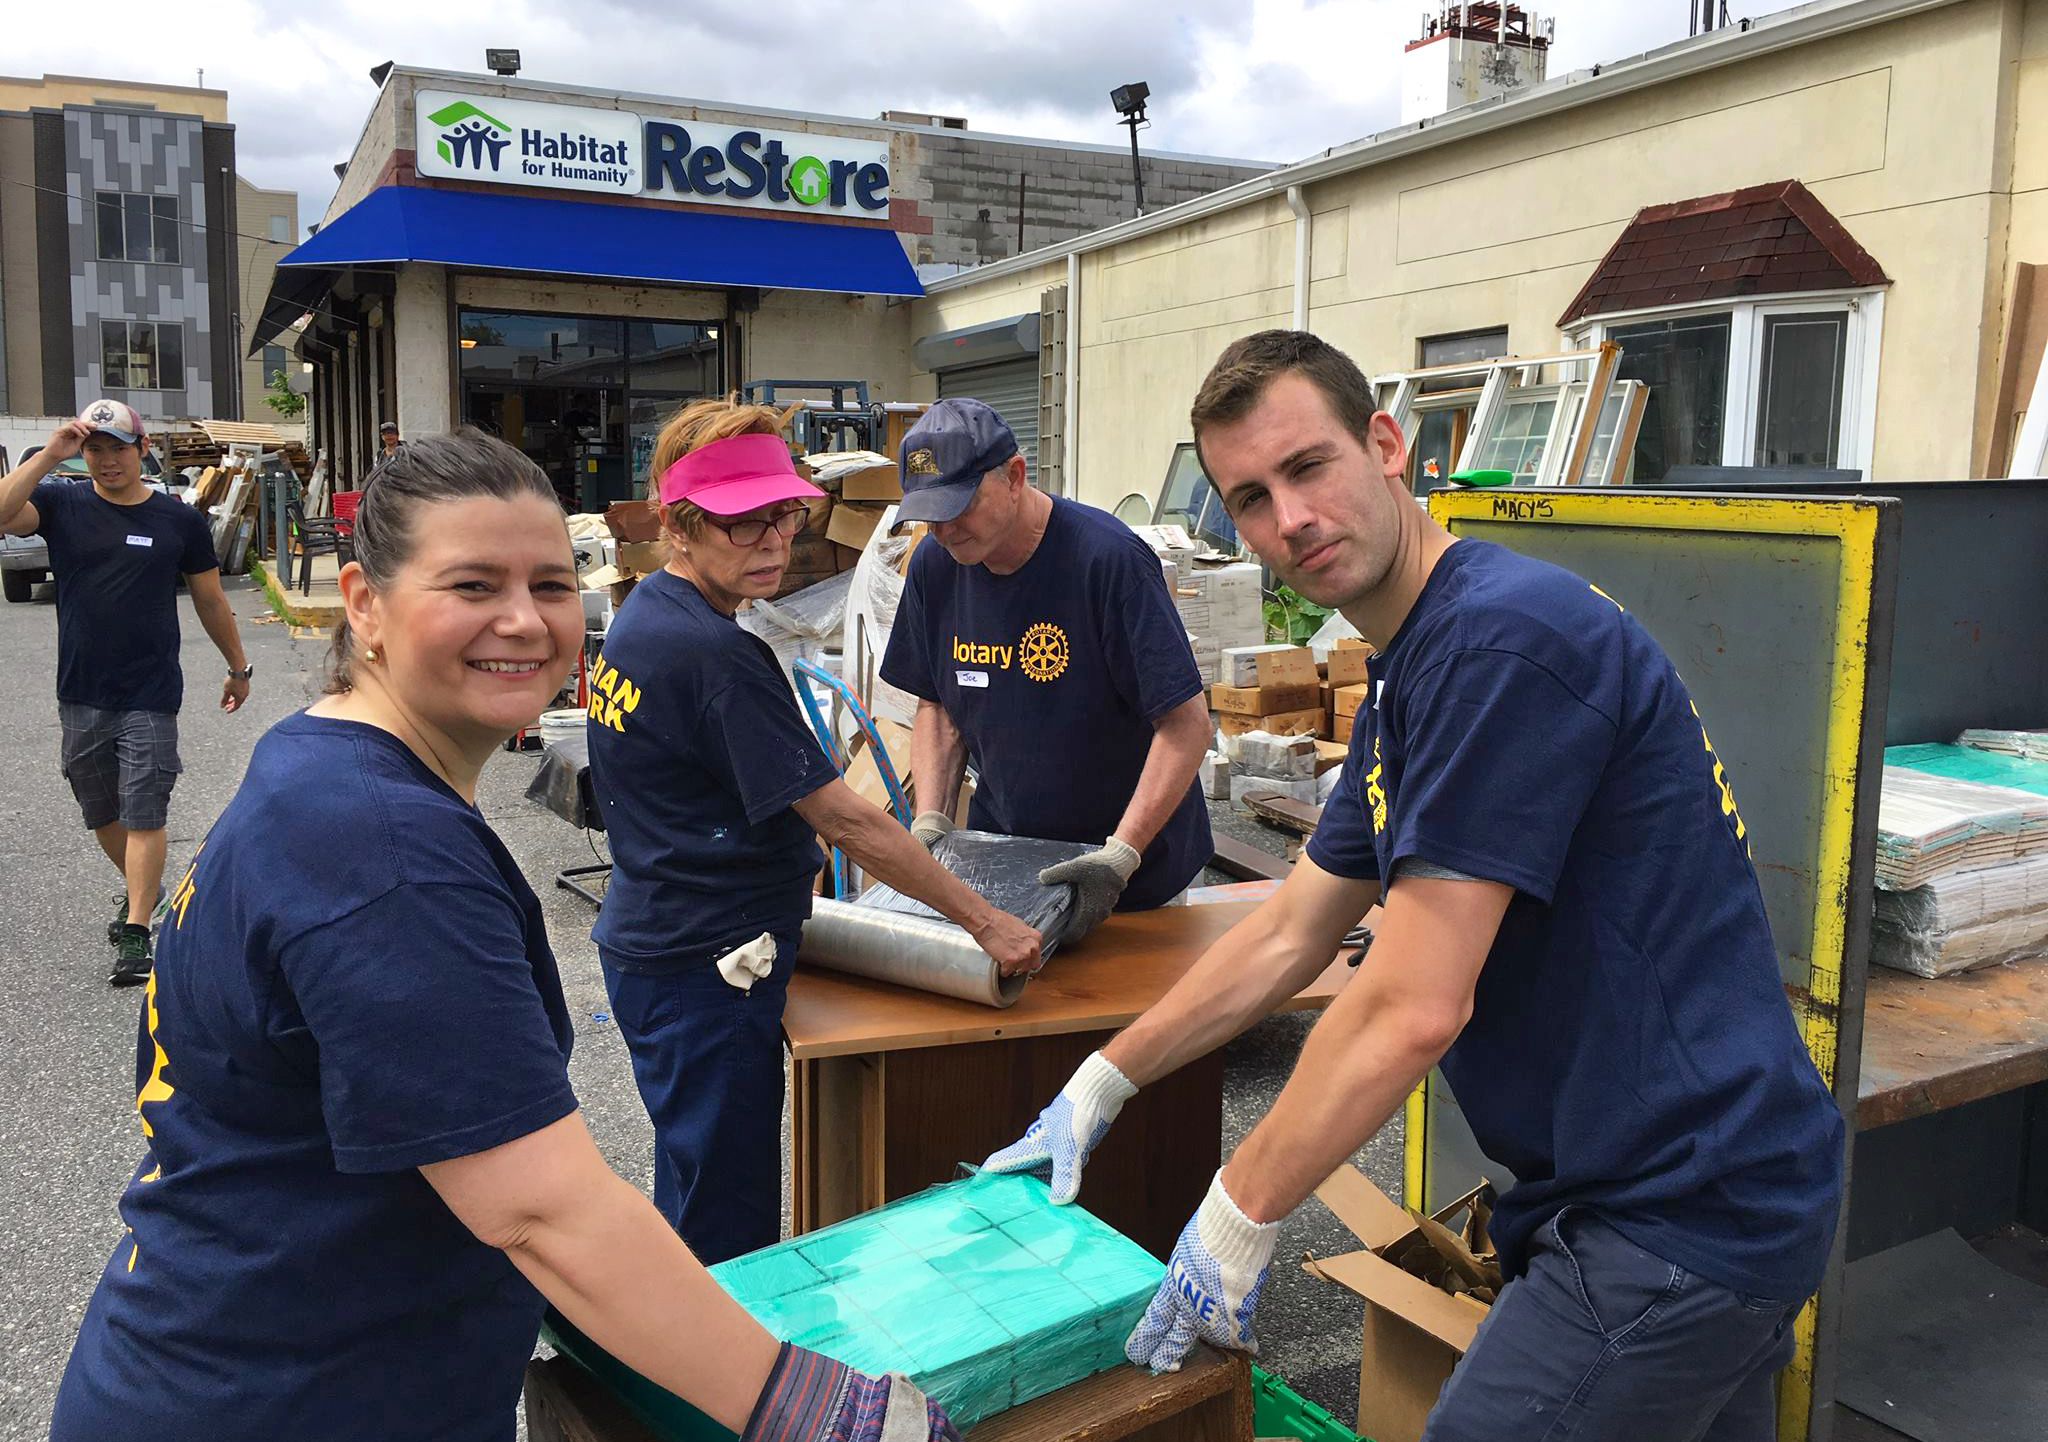 Improving local communities - We are actively involved with hands-on community service projects—from food distribution for the sick and elderly to environmental cleanup activities.